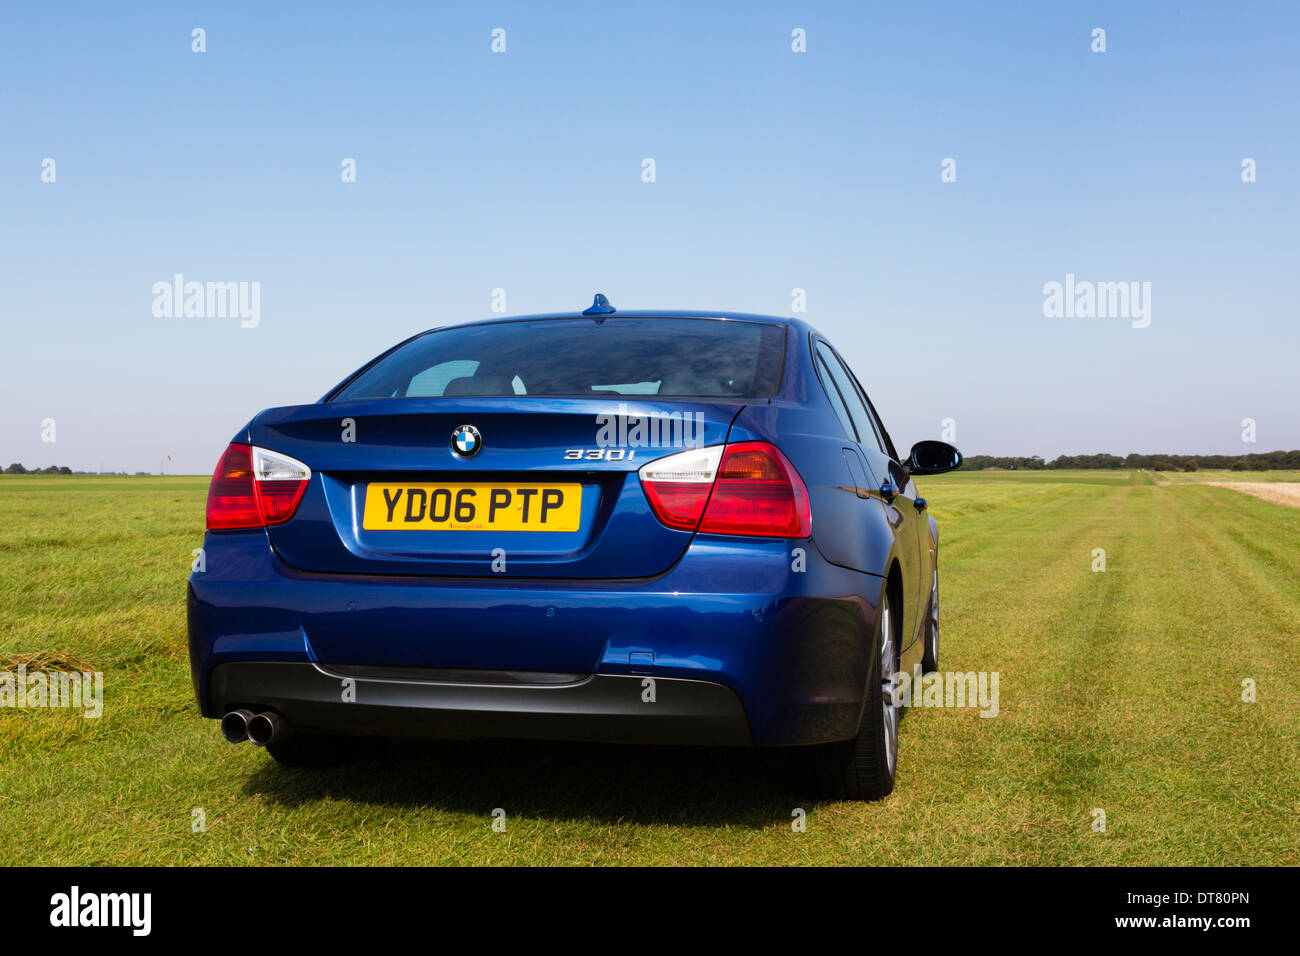 hight resolution of 2006 bmw 330i in le mans blue stock image